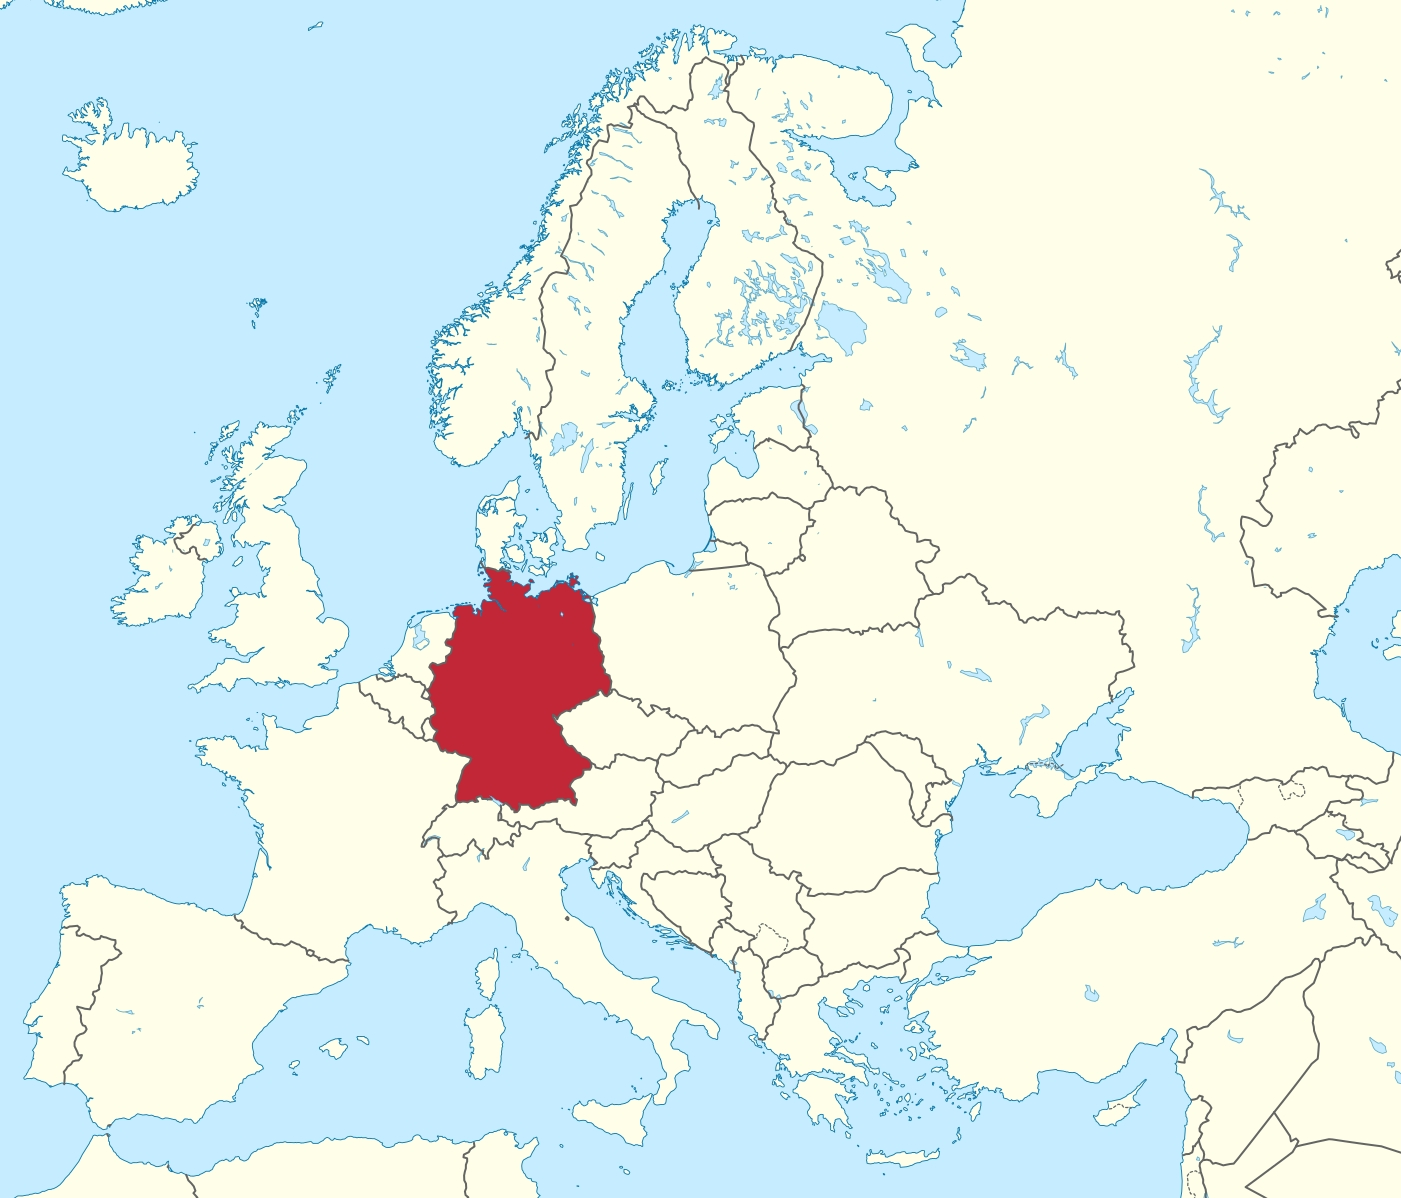 File:germany In Europe (-Rivers -Mini Map).svg - Wikimedia Commons pertaining to Europe Map With Germany Highlighted